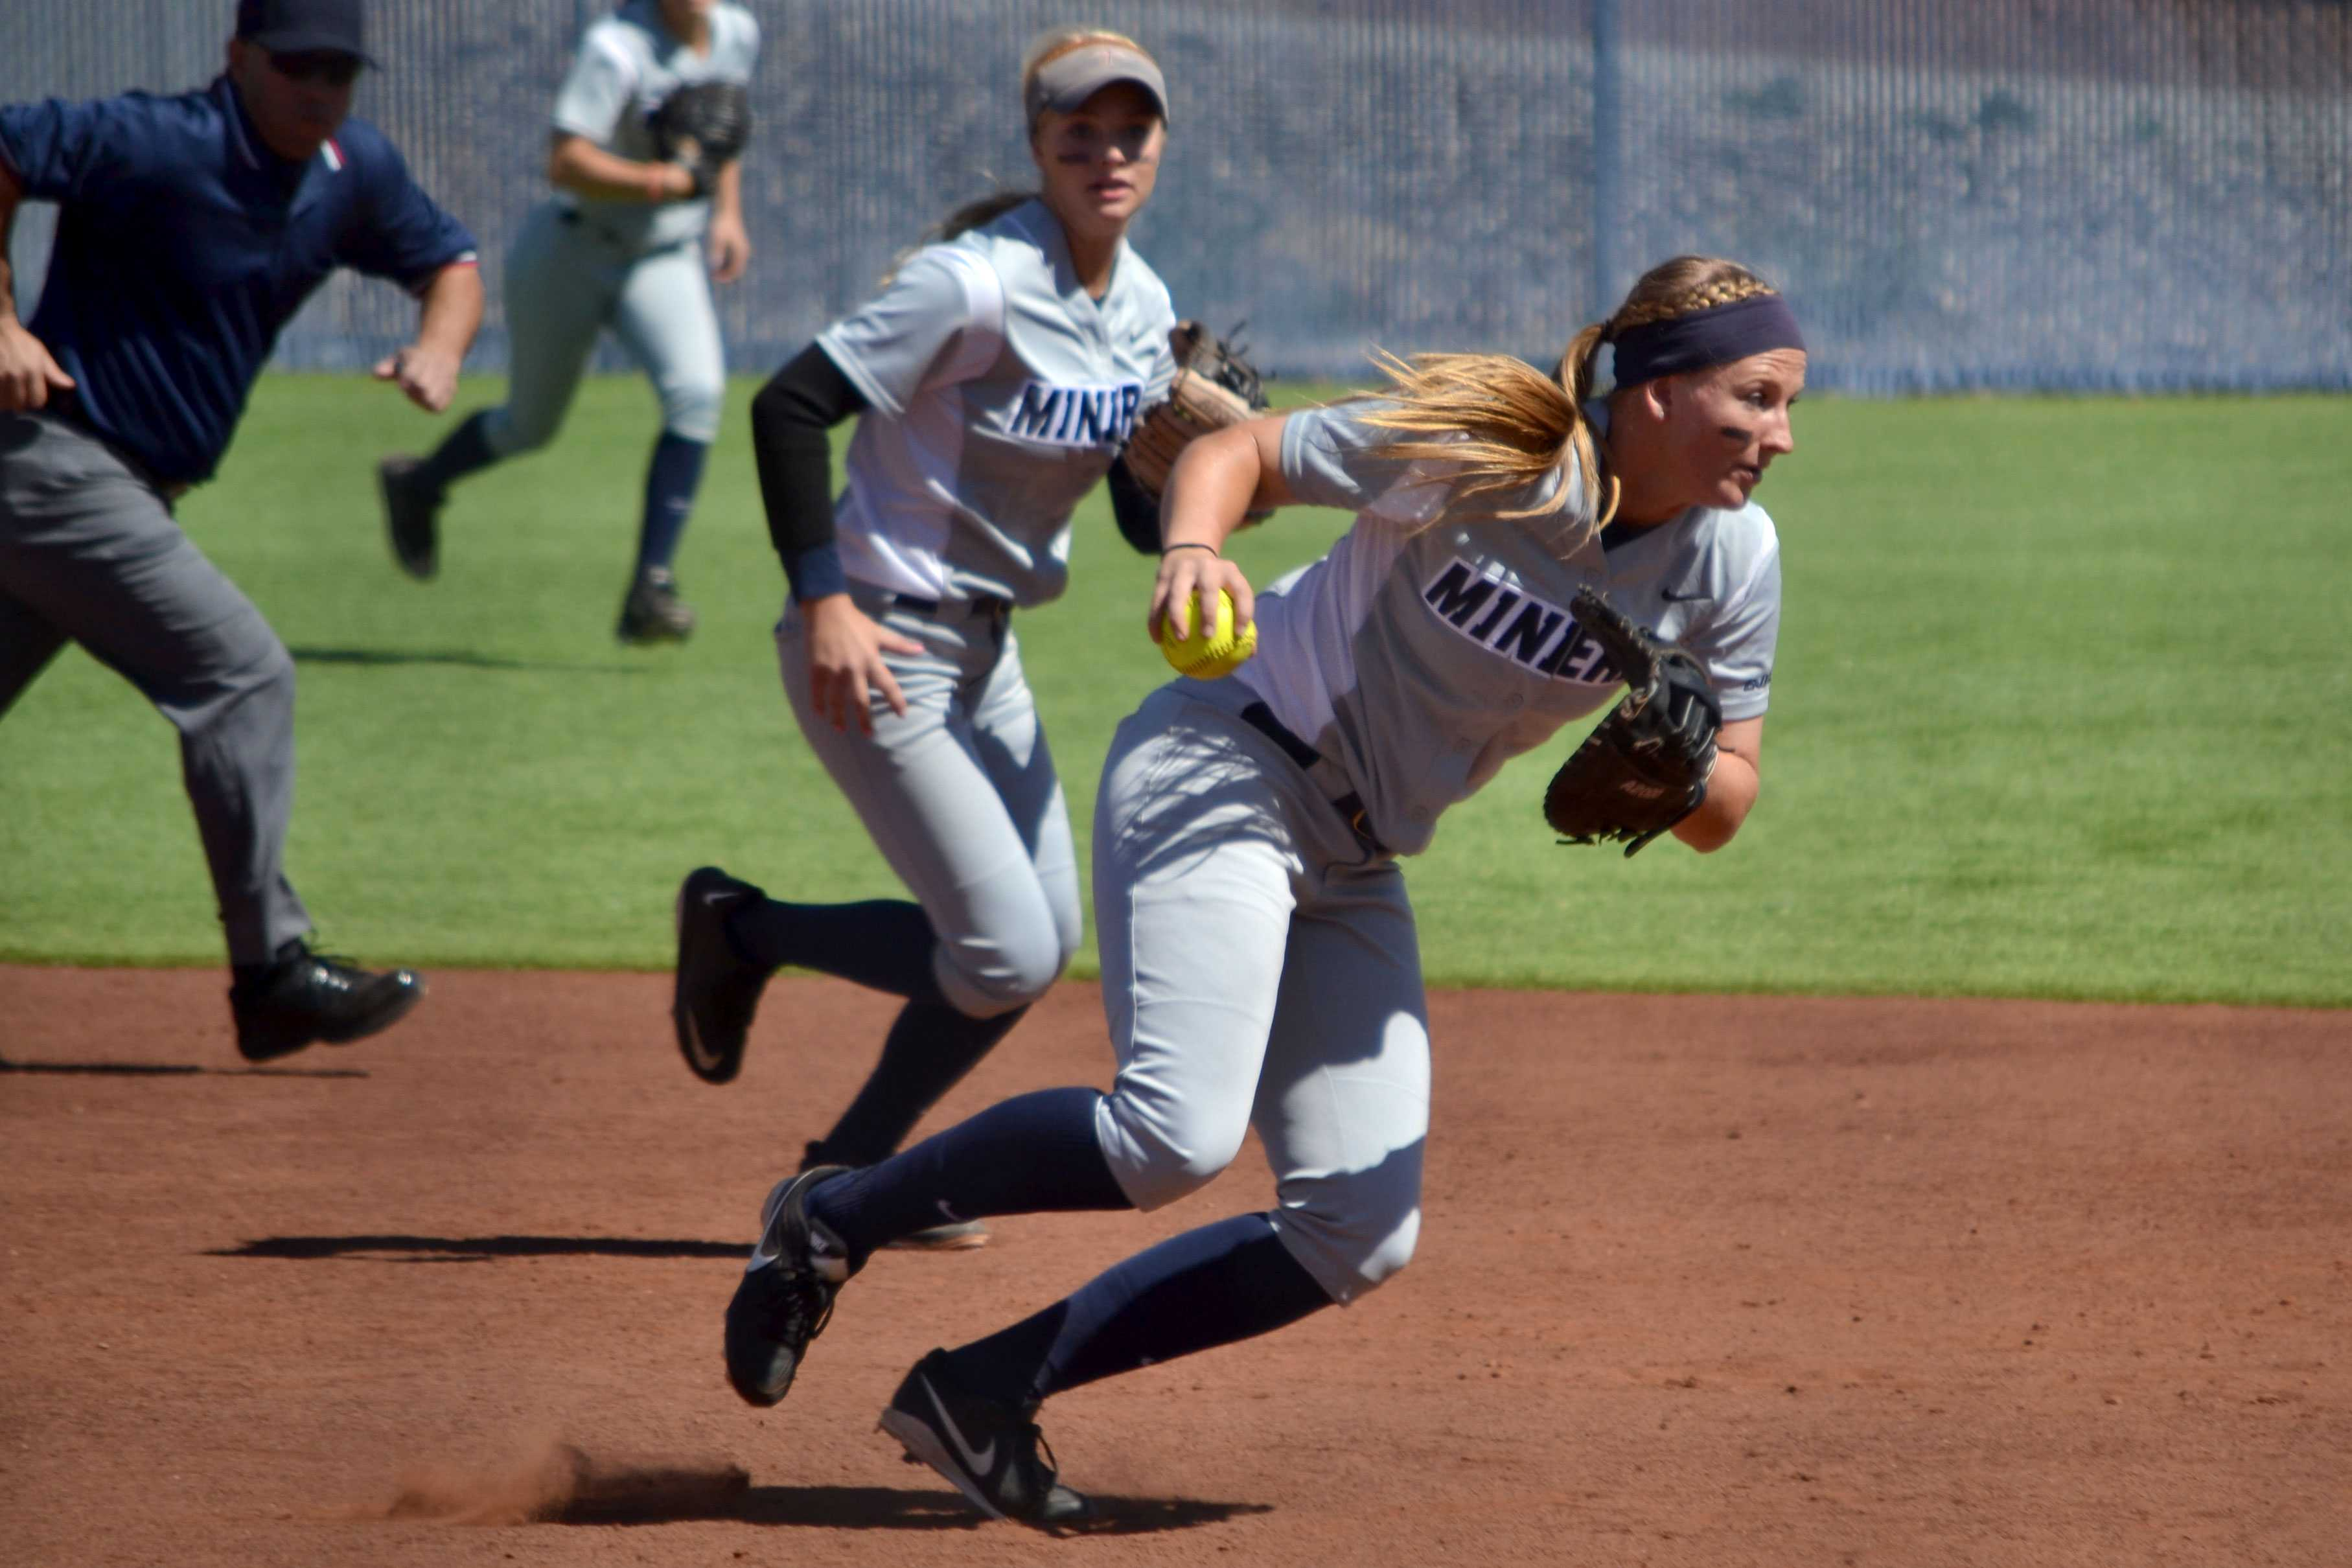 The UTEP softball team will play the NMSU Aggies again on April 28 in El Paso.